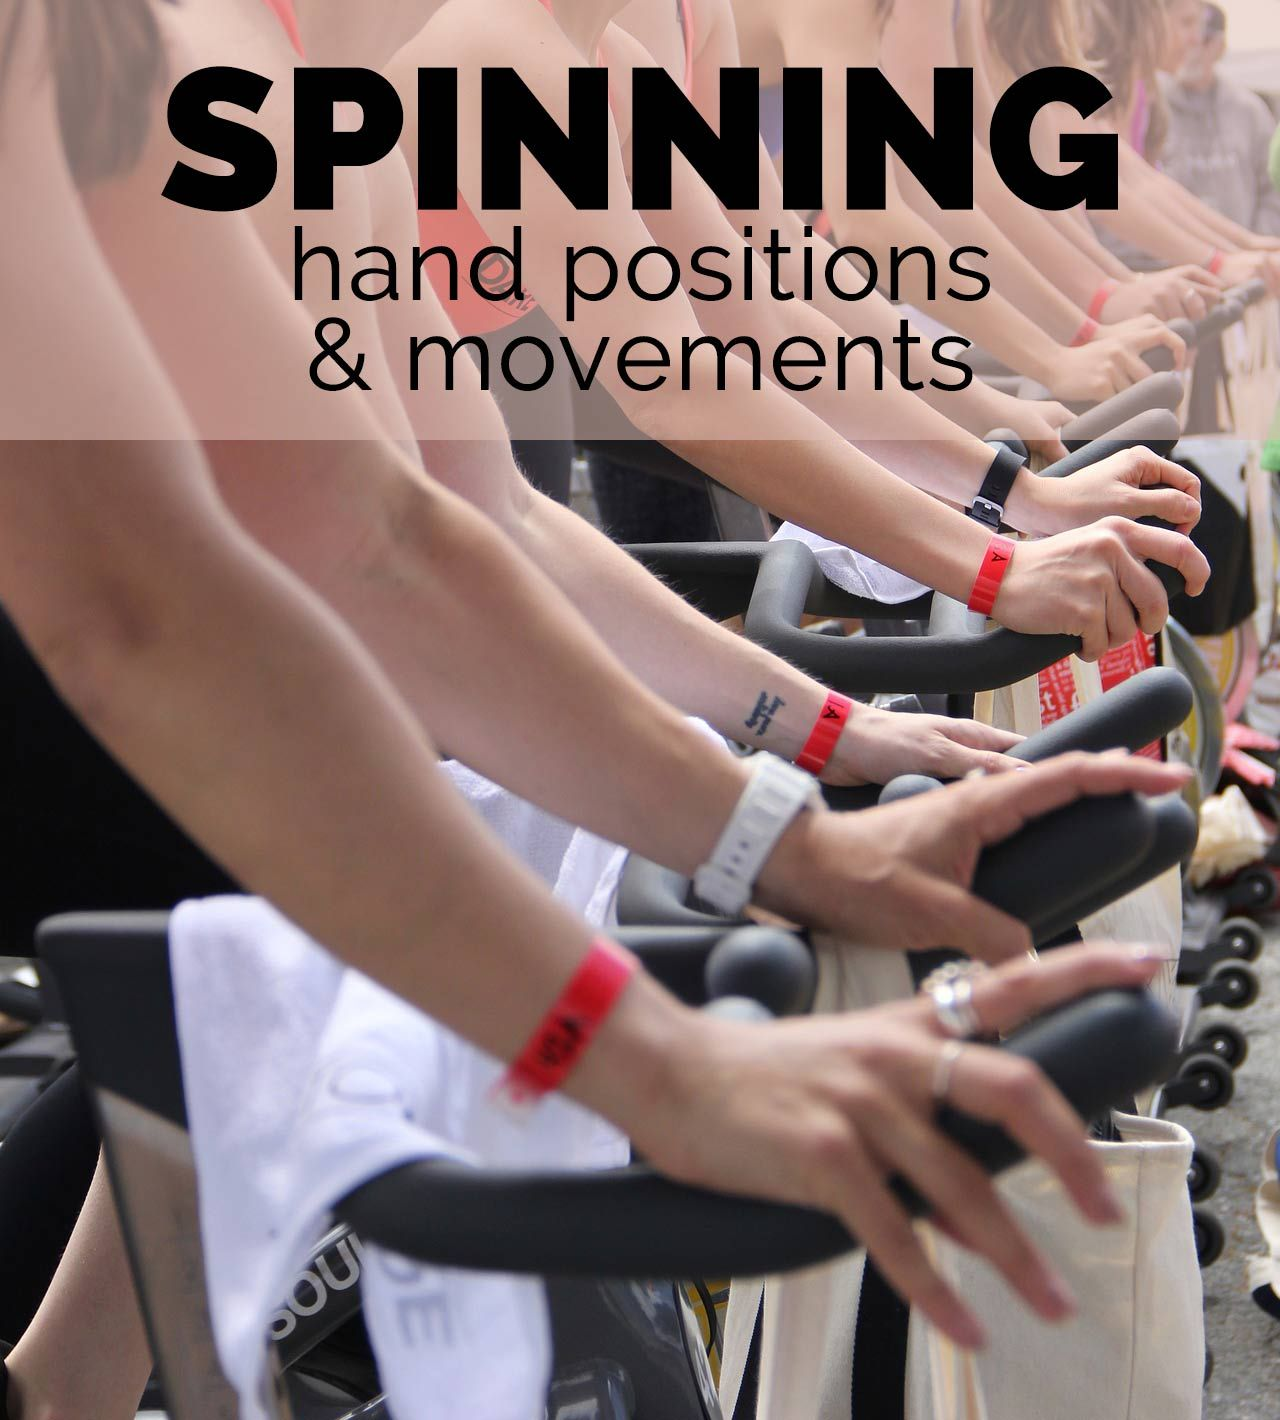 Spinning Hand Positions And Movements Spin Yoga Spin Class